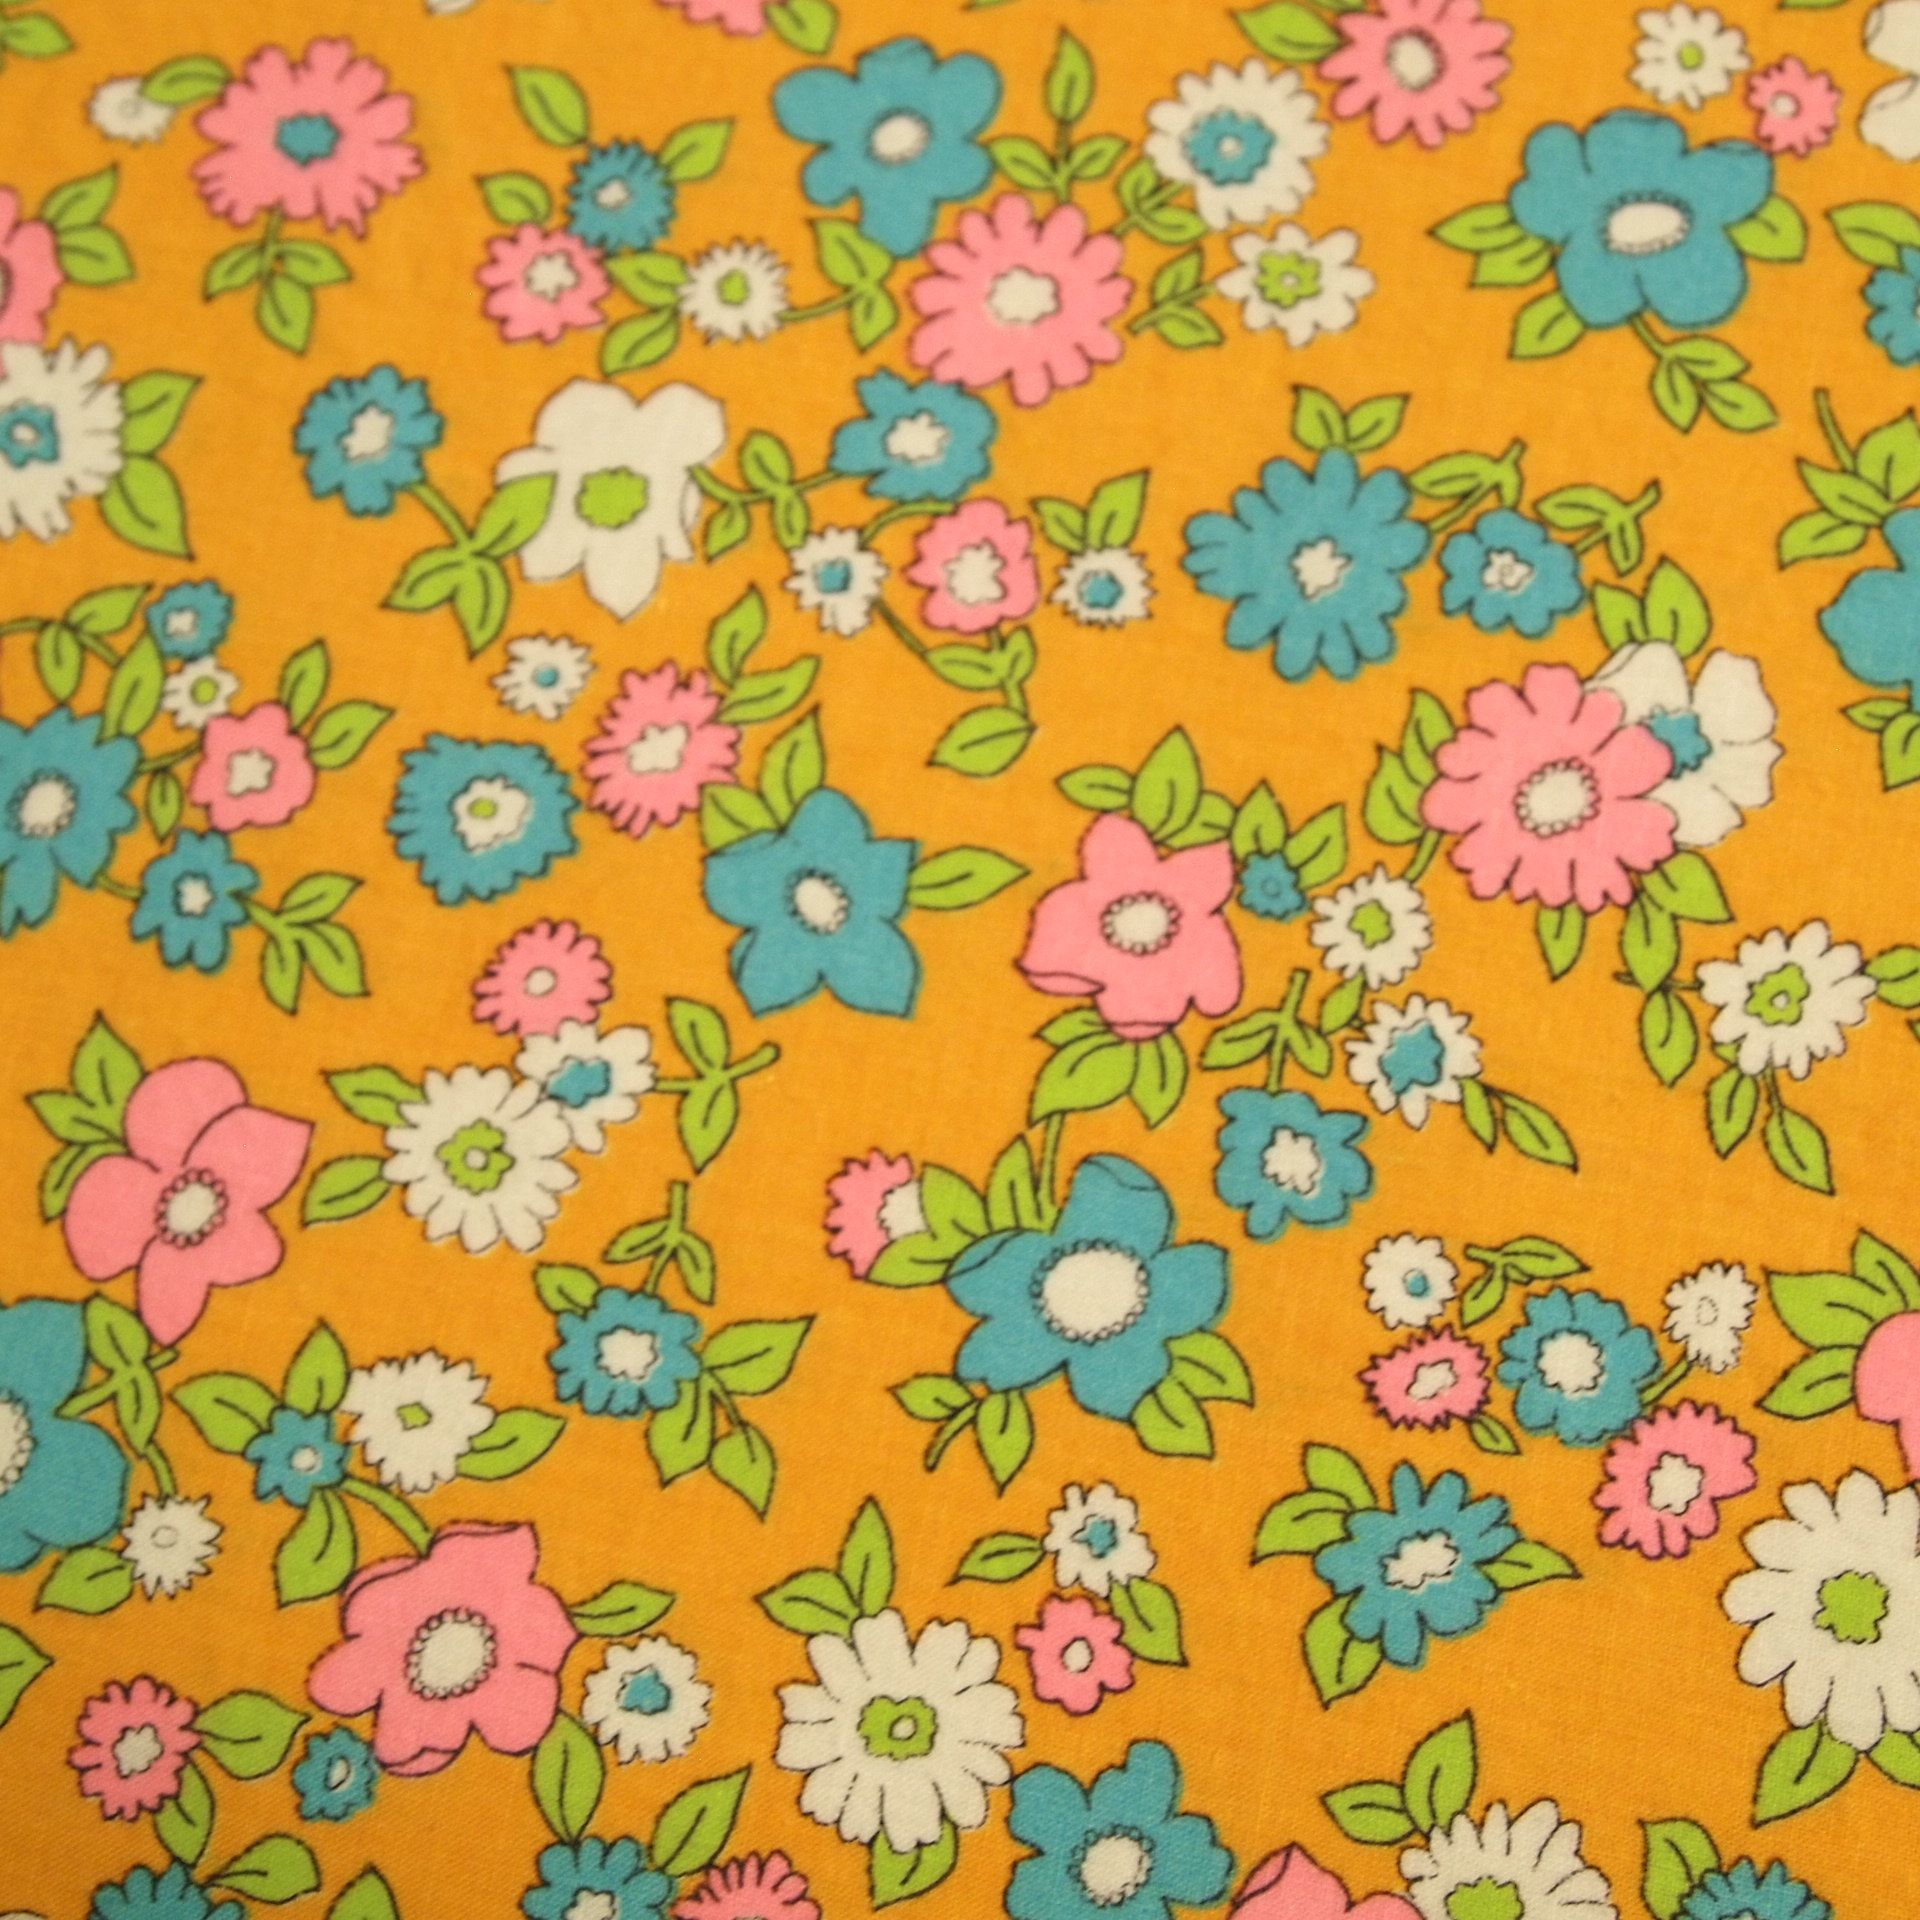 1960s flower patterns images for Retro fabric